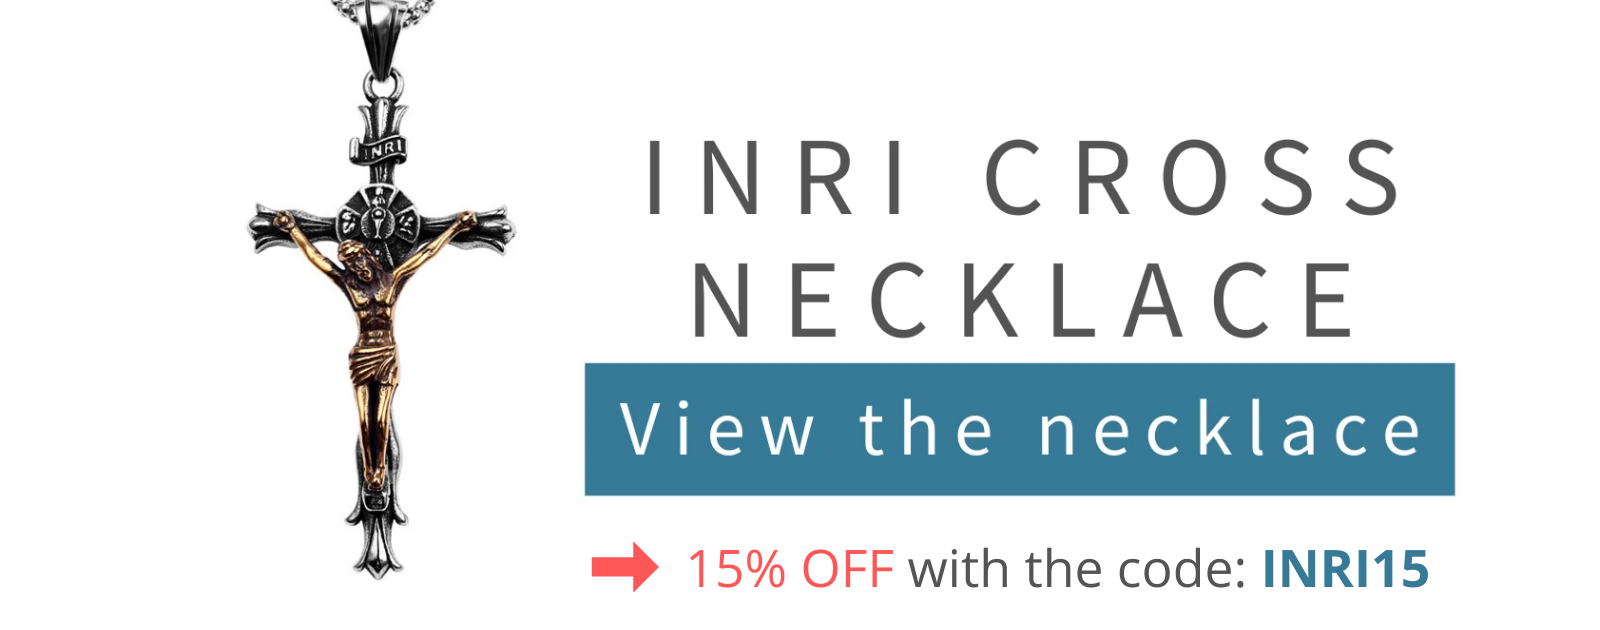 INRI cross necklace